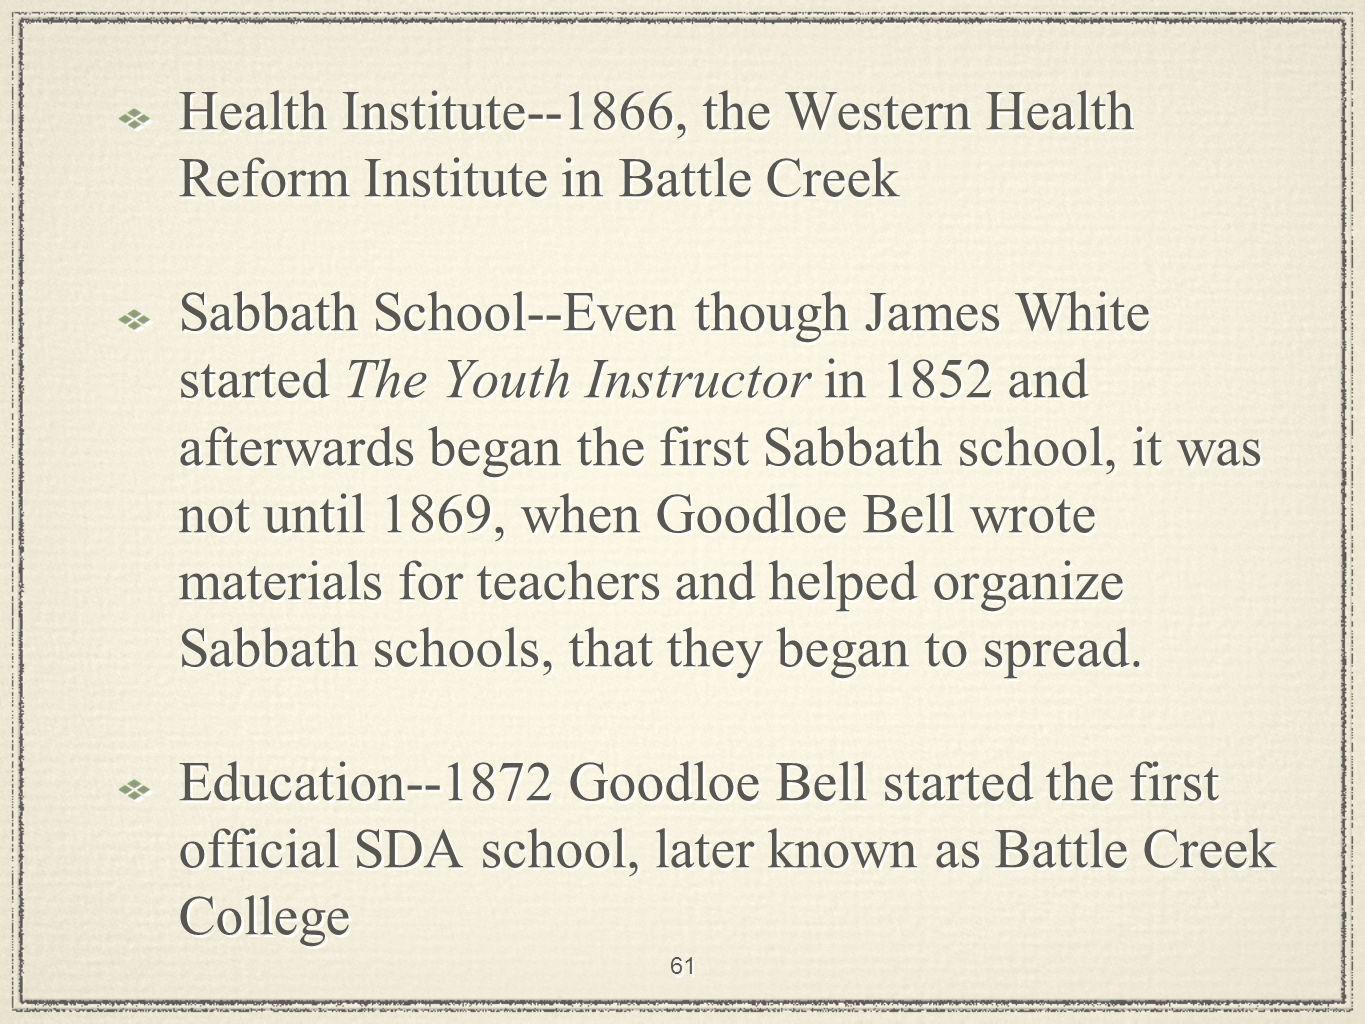 61 Health Institute--1866, the Western Health Reform Institute in Battle Creek Sabbath School--Even though James White started The Youth Instructor in 1852 and afterwards began the first Sabbath school, it was not until 1869, when Goodloe Bell wrote materials for teachers and helped organize Sabbath schools, that they began to spread.